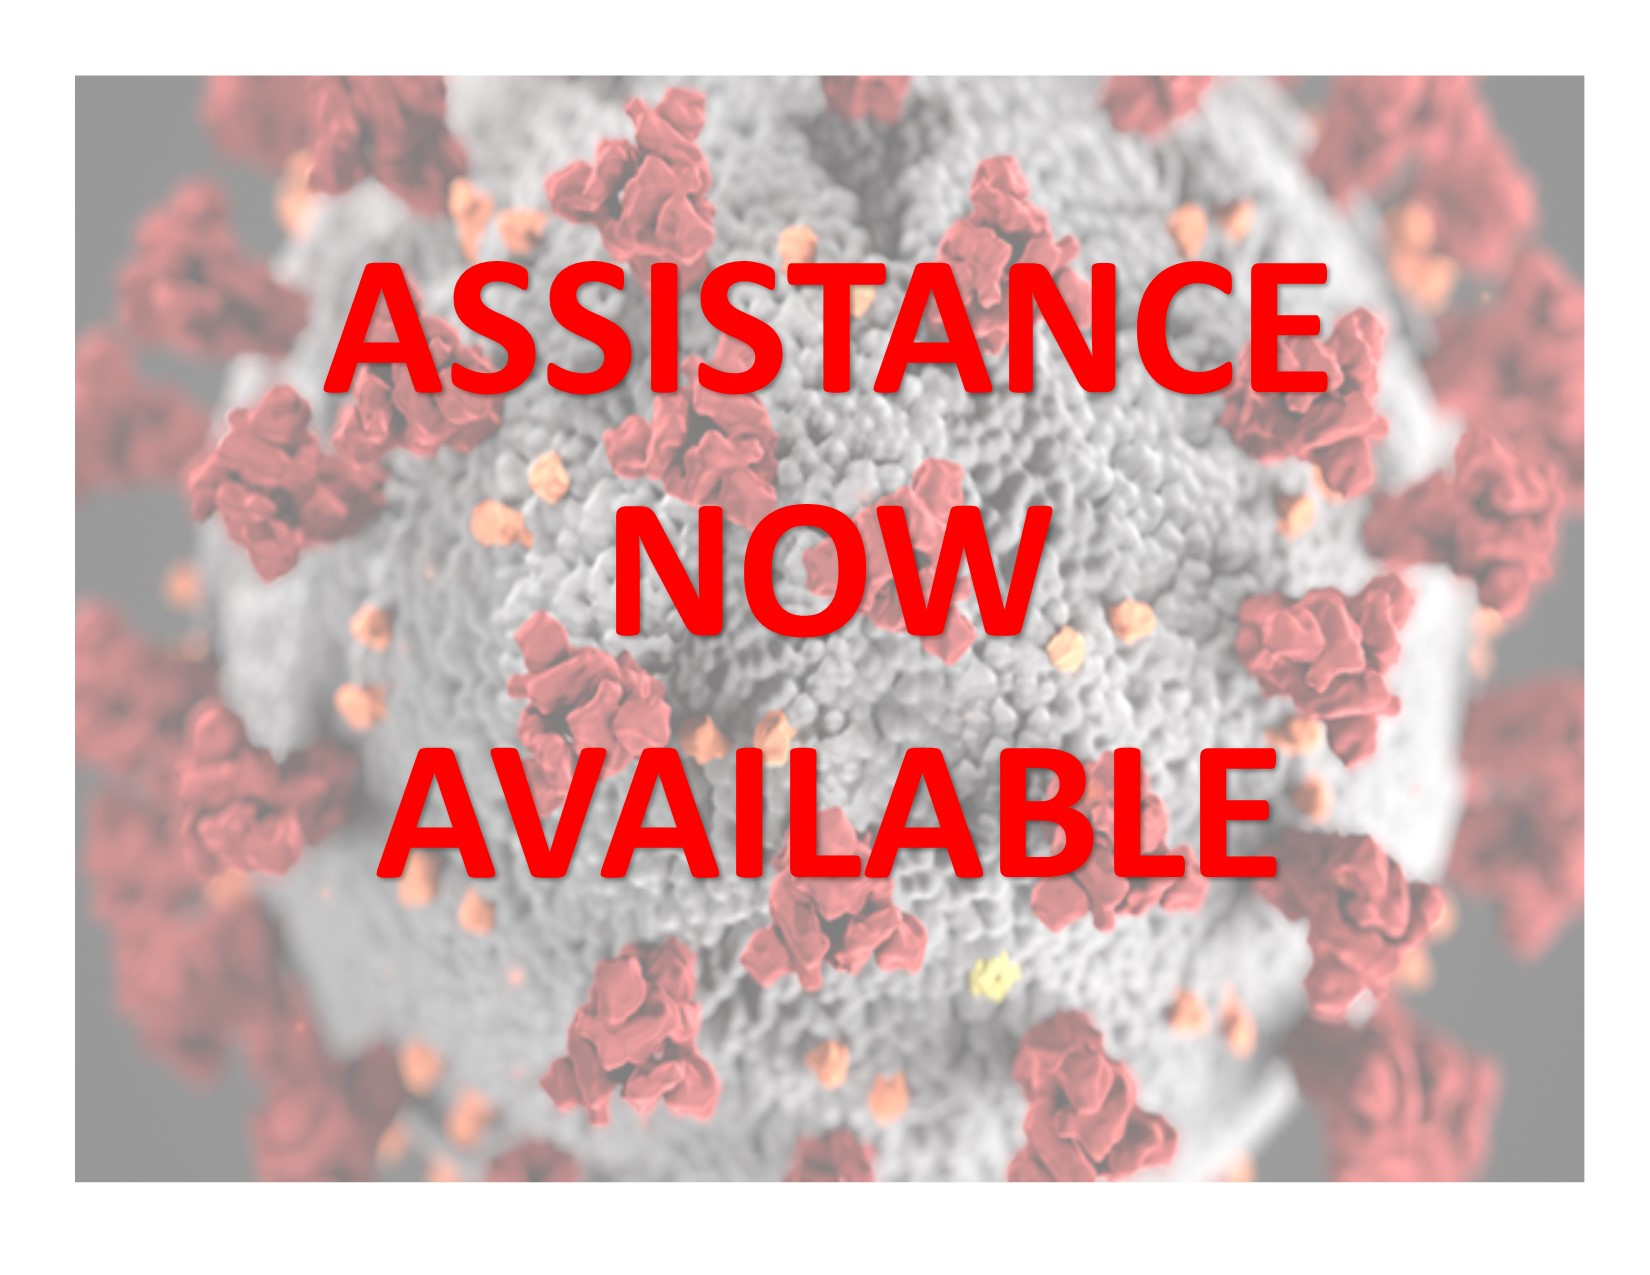 COVID-19 ASSISTANCE, RESOURCES, INFORMATION